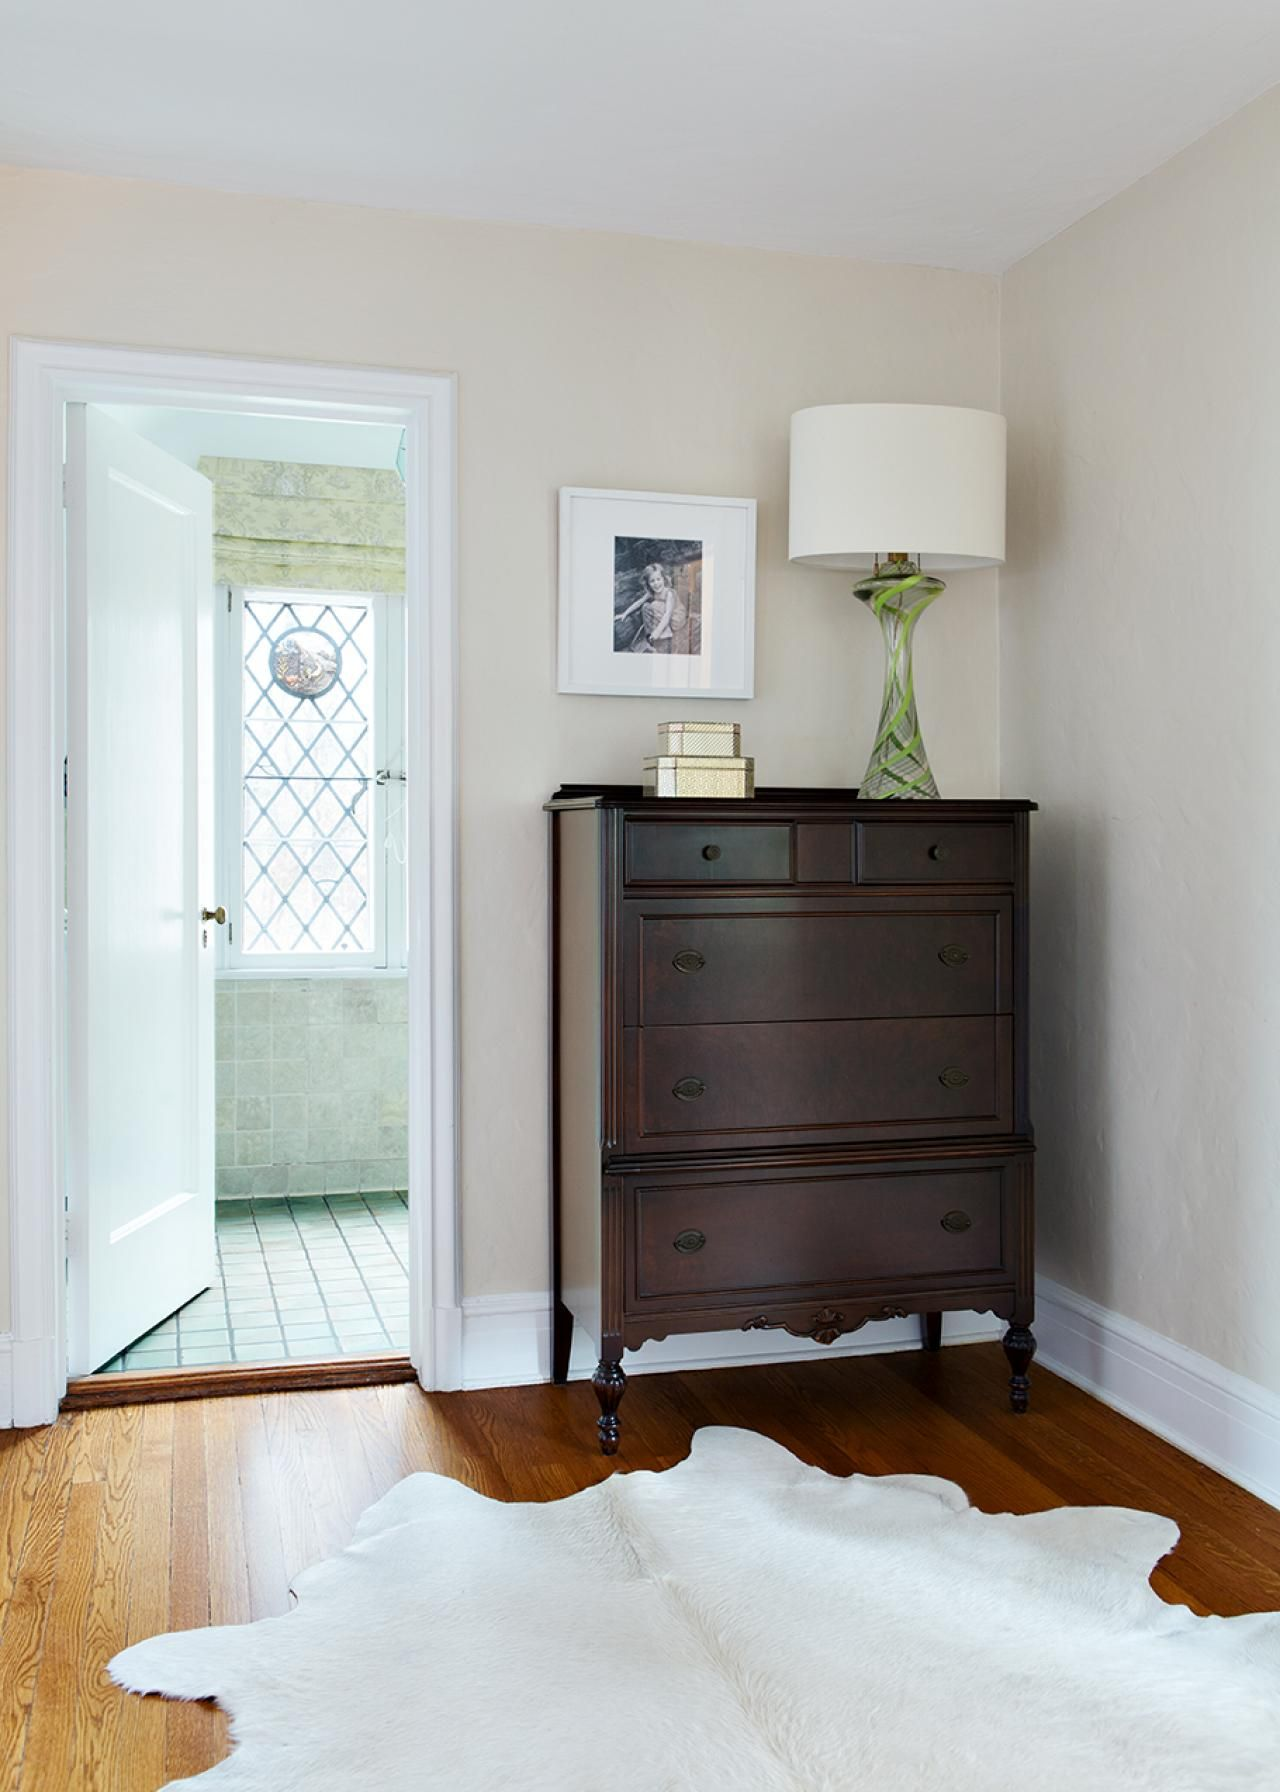 A Gallery of Beautiful Iris Images Traditional bedroom